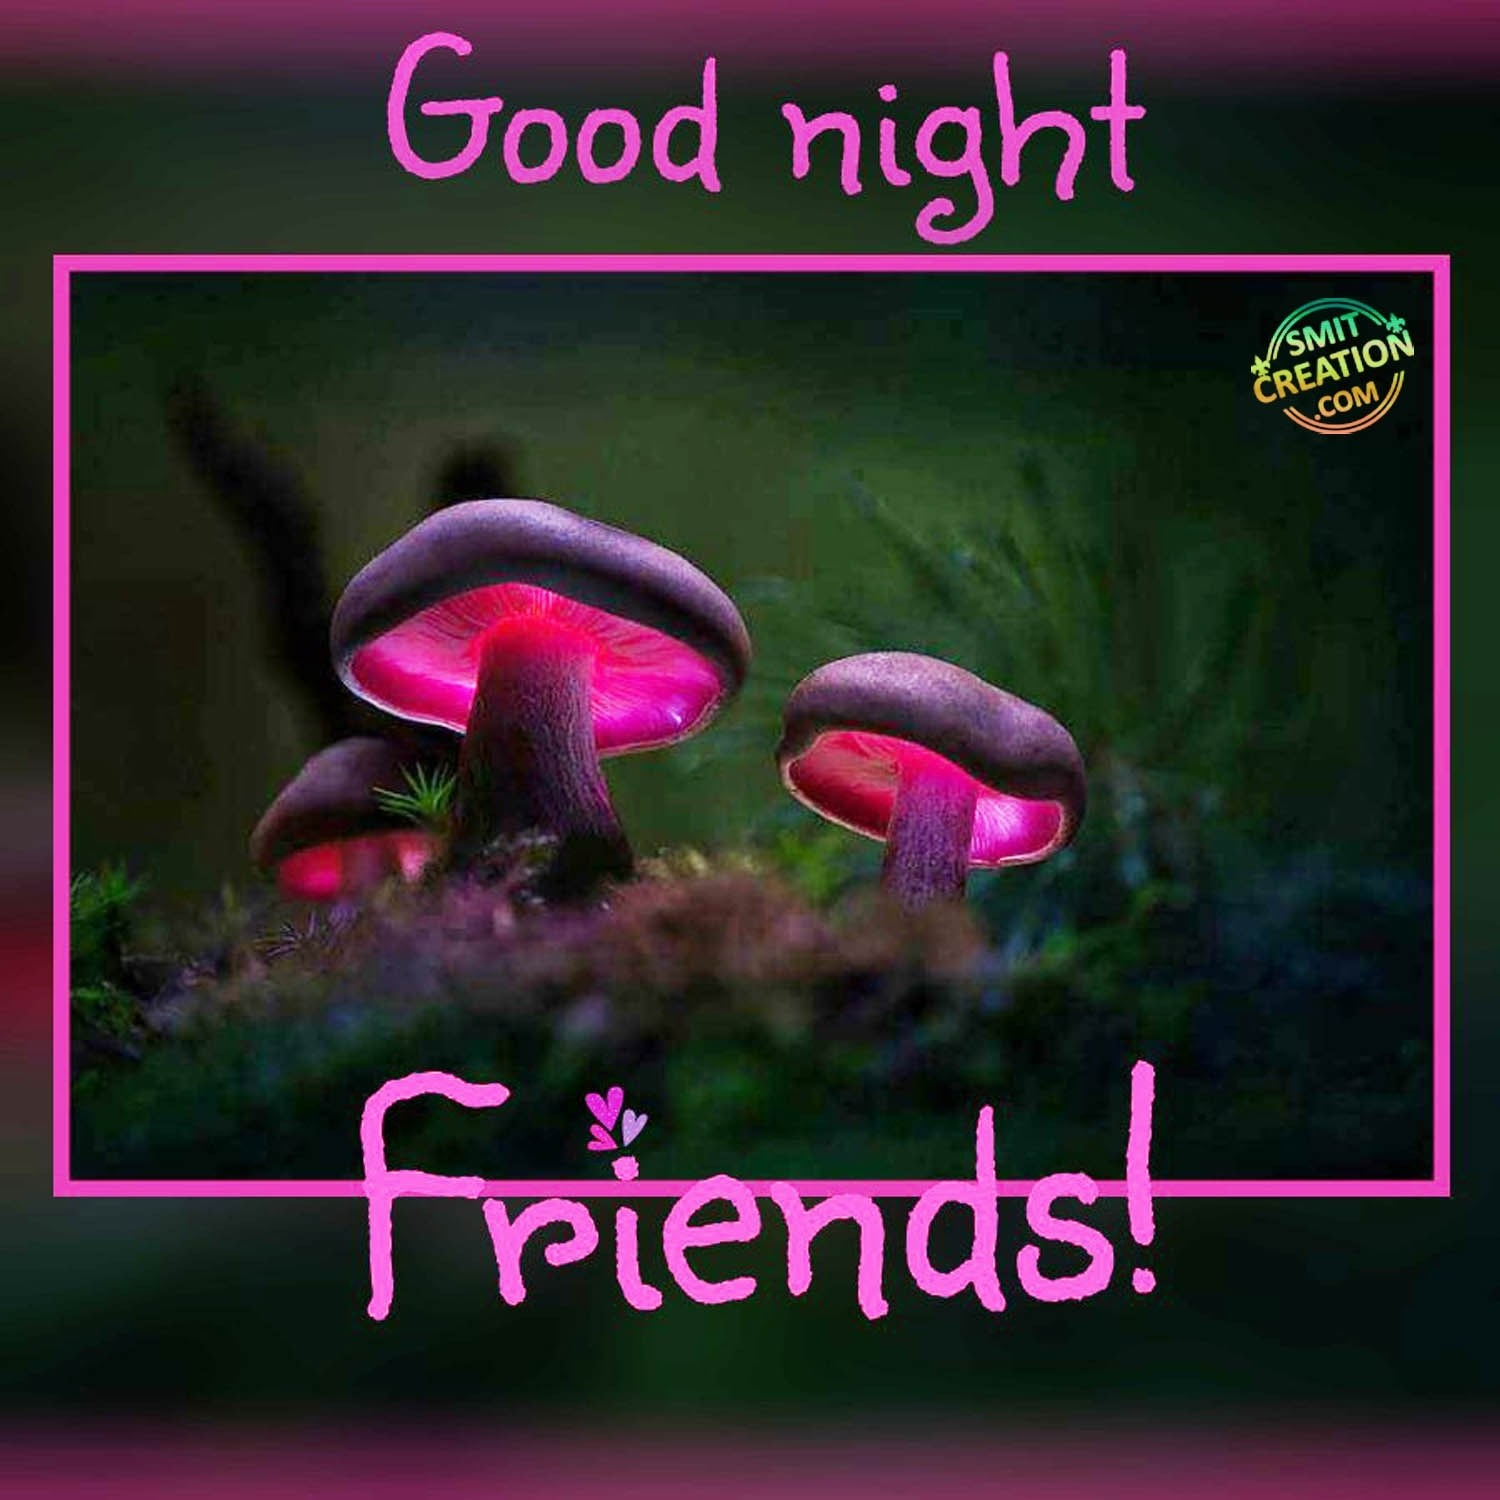 Good Night Friends Pictures And Graphics Smitcreationcom Page 7